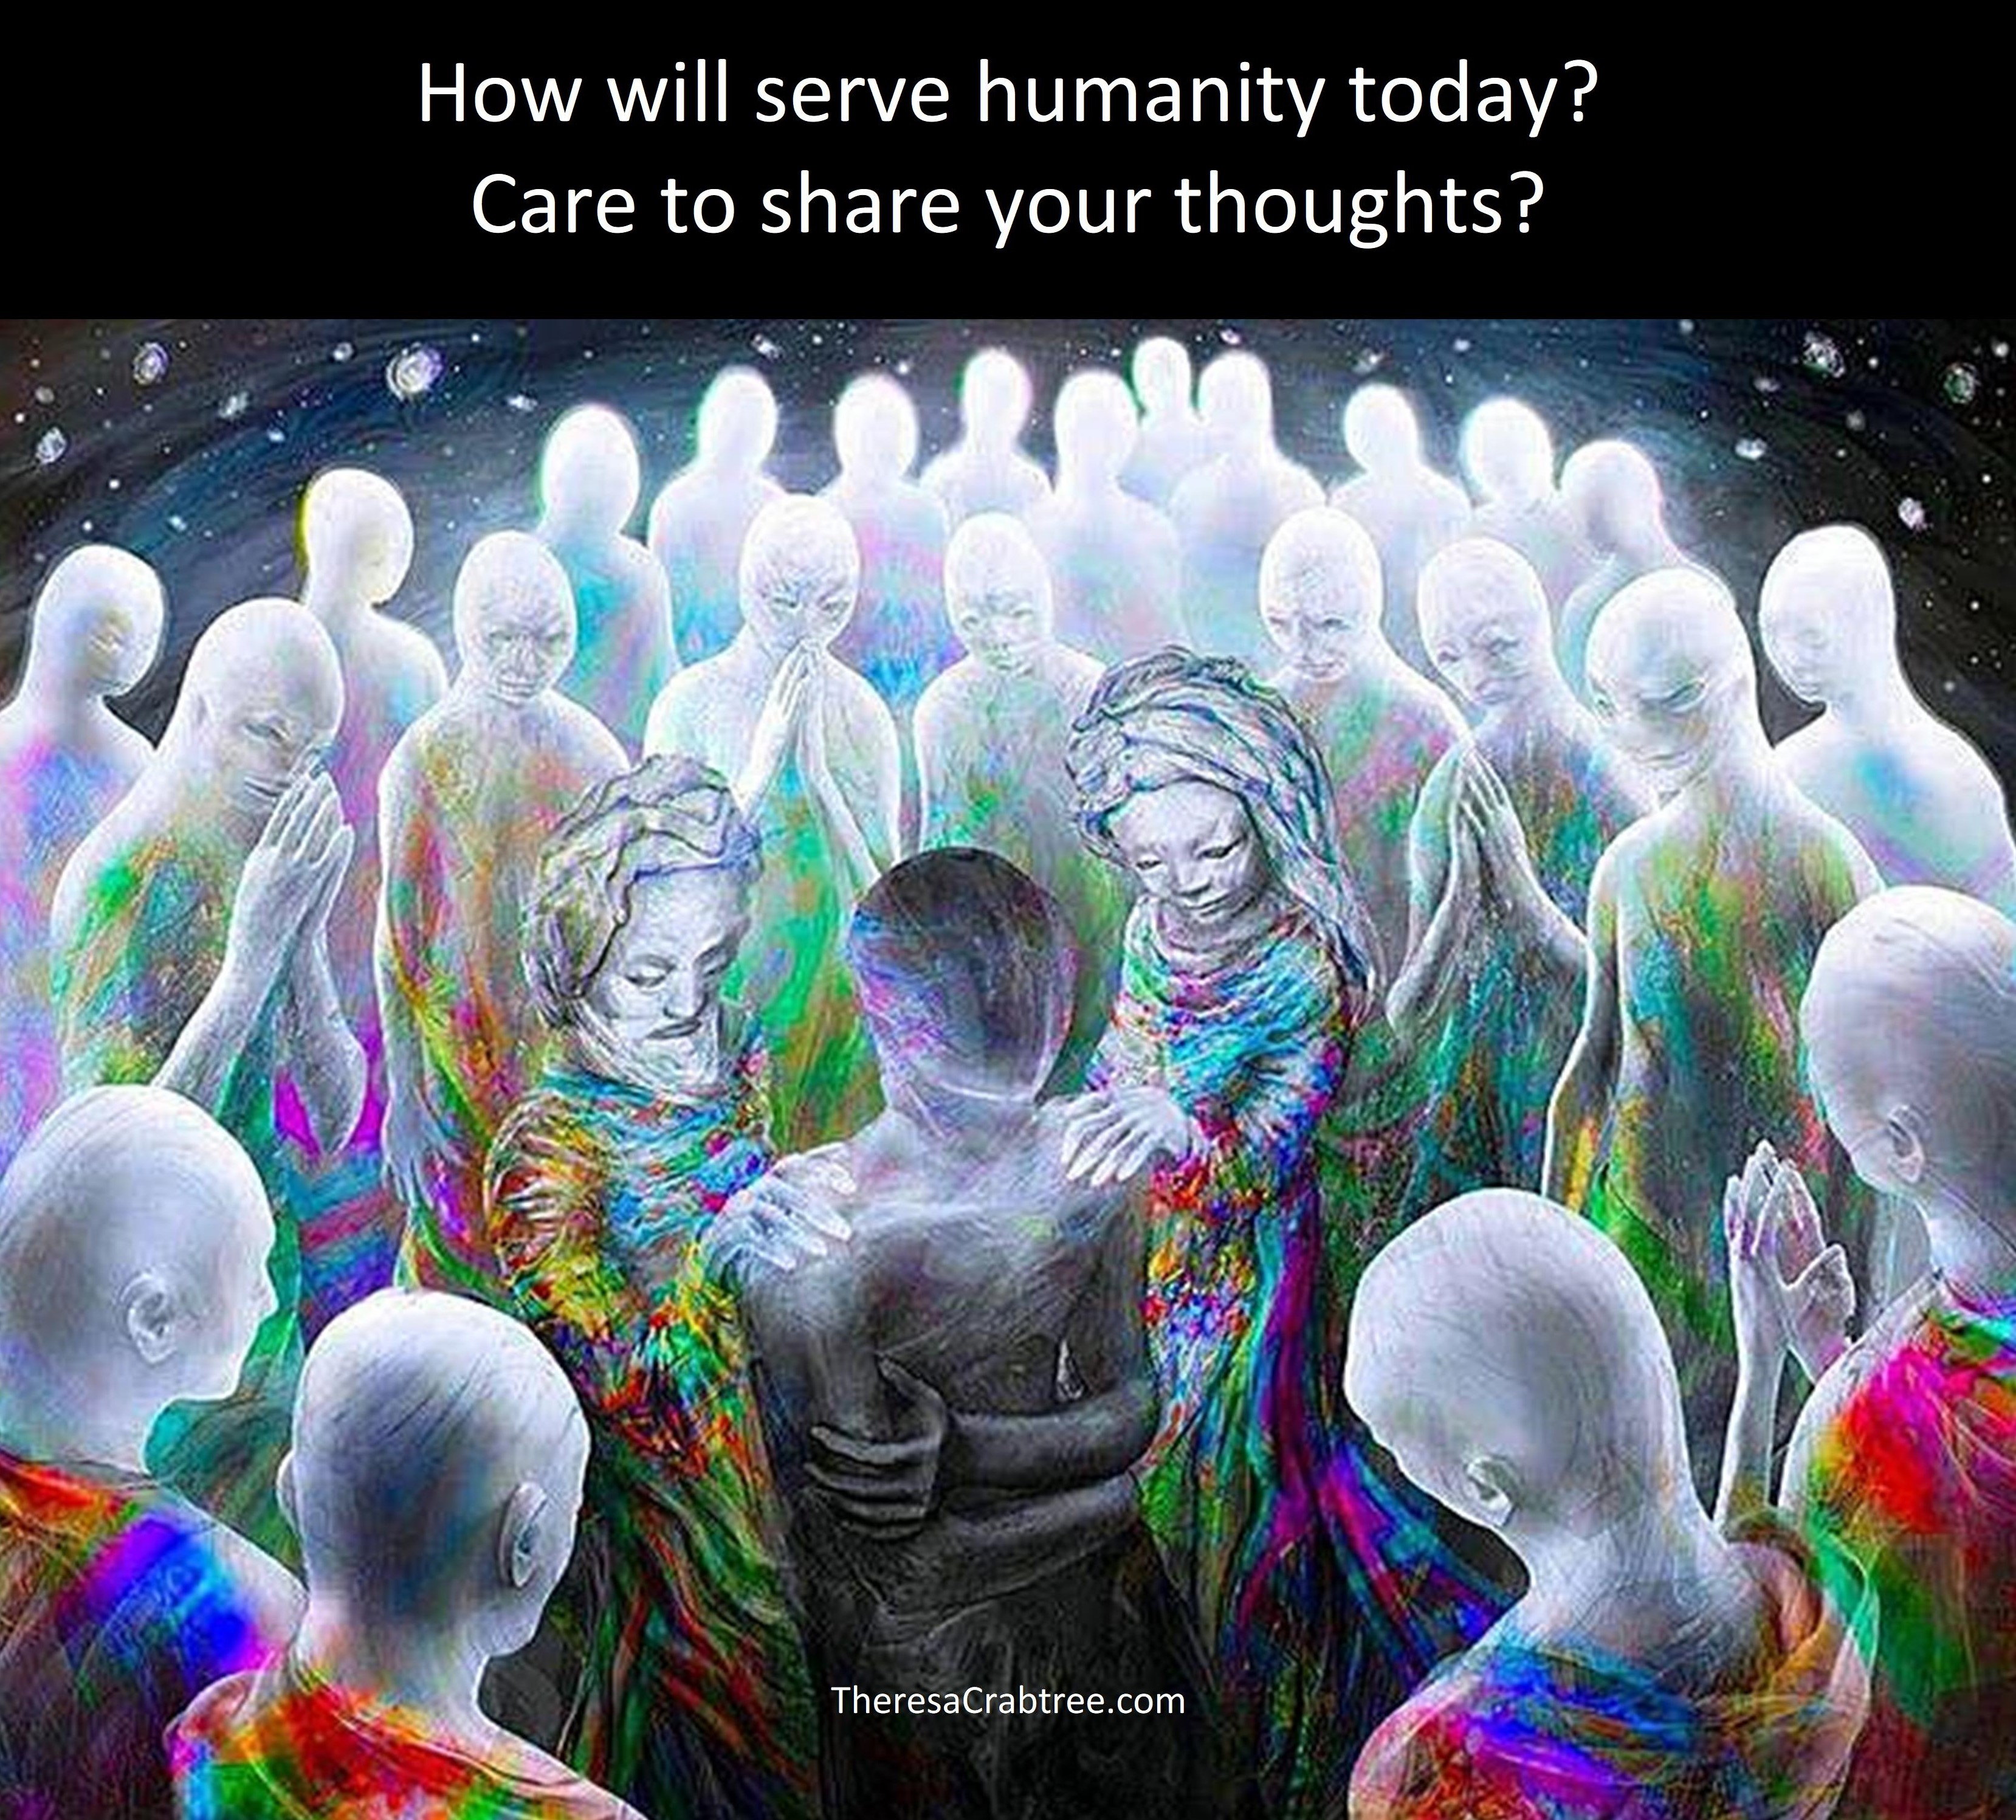 How will you serve humanity today?